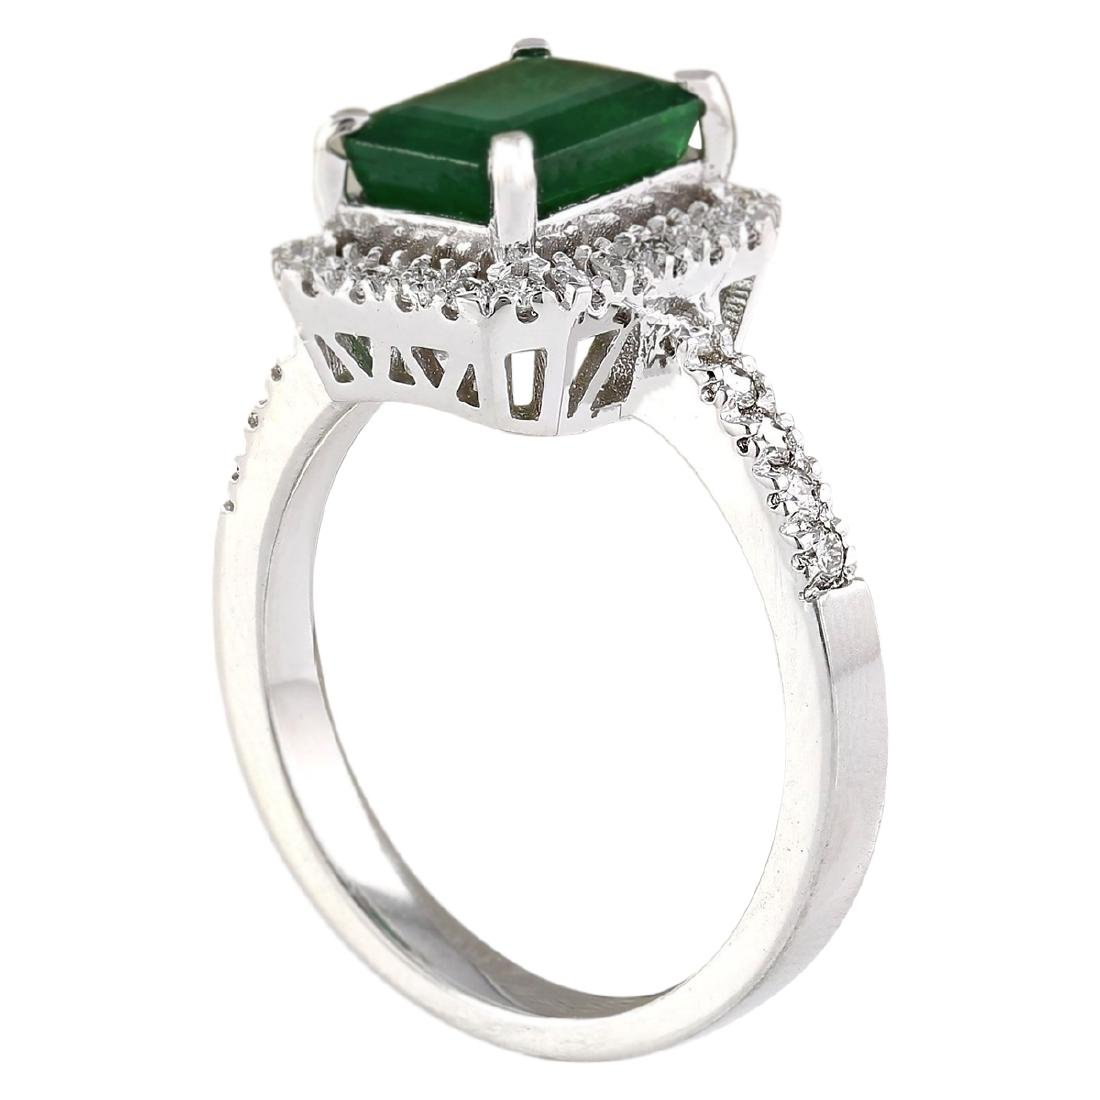 2.64 CTW Natural Emerald And Diamond Ring In 18K White - 3